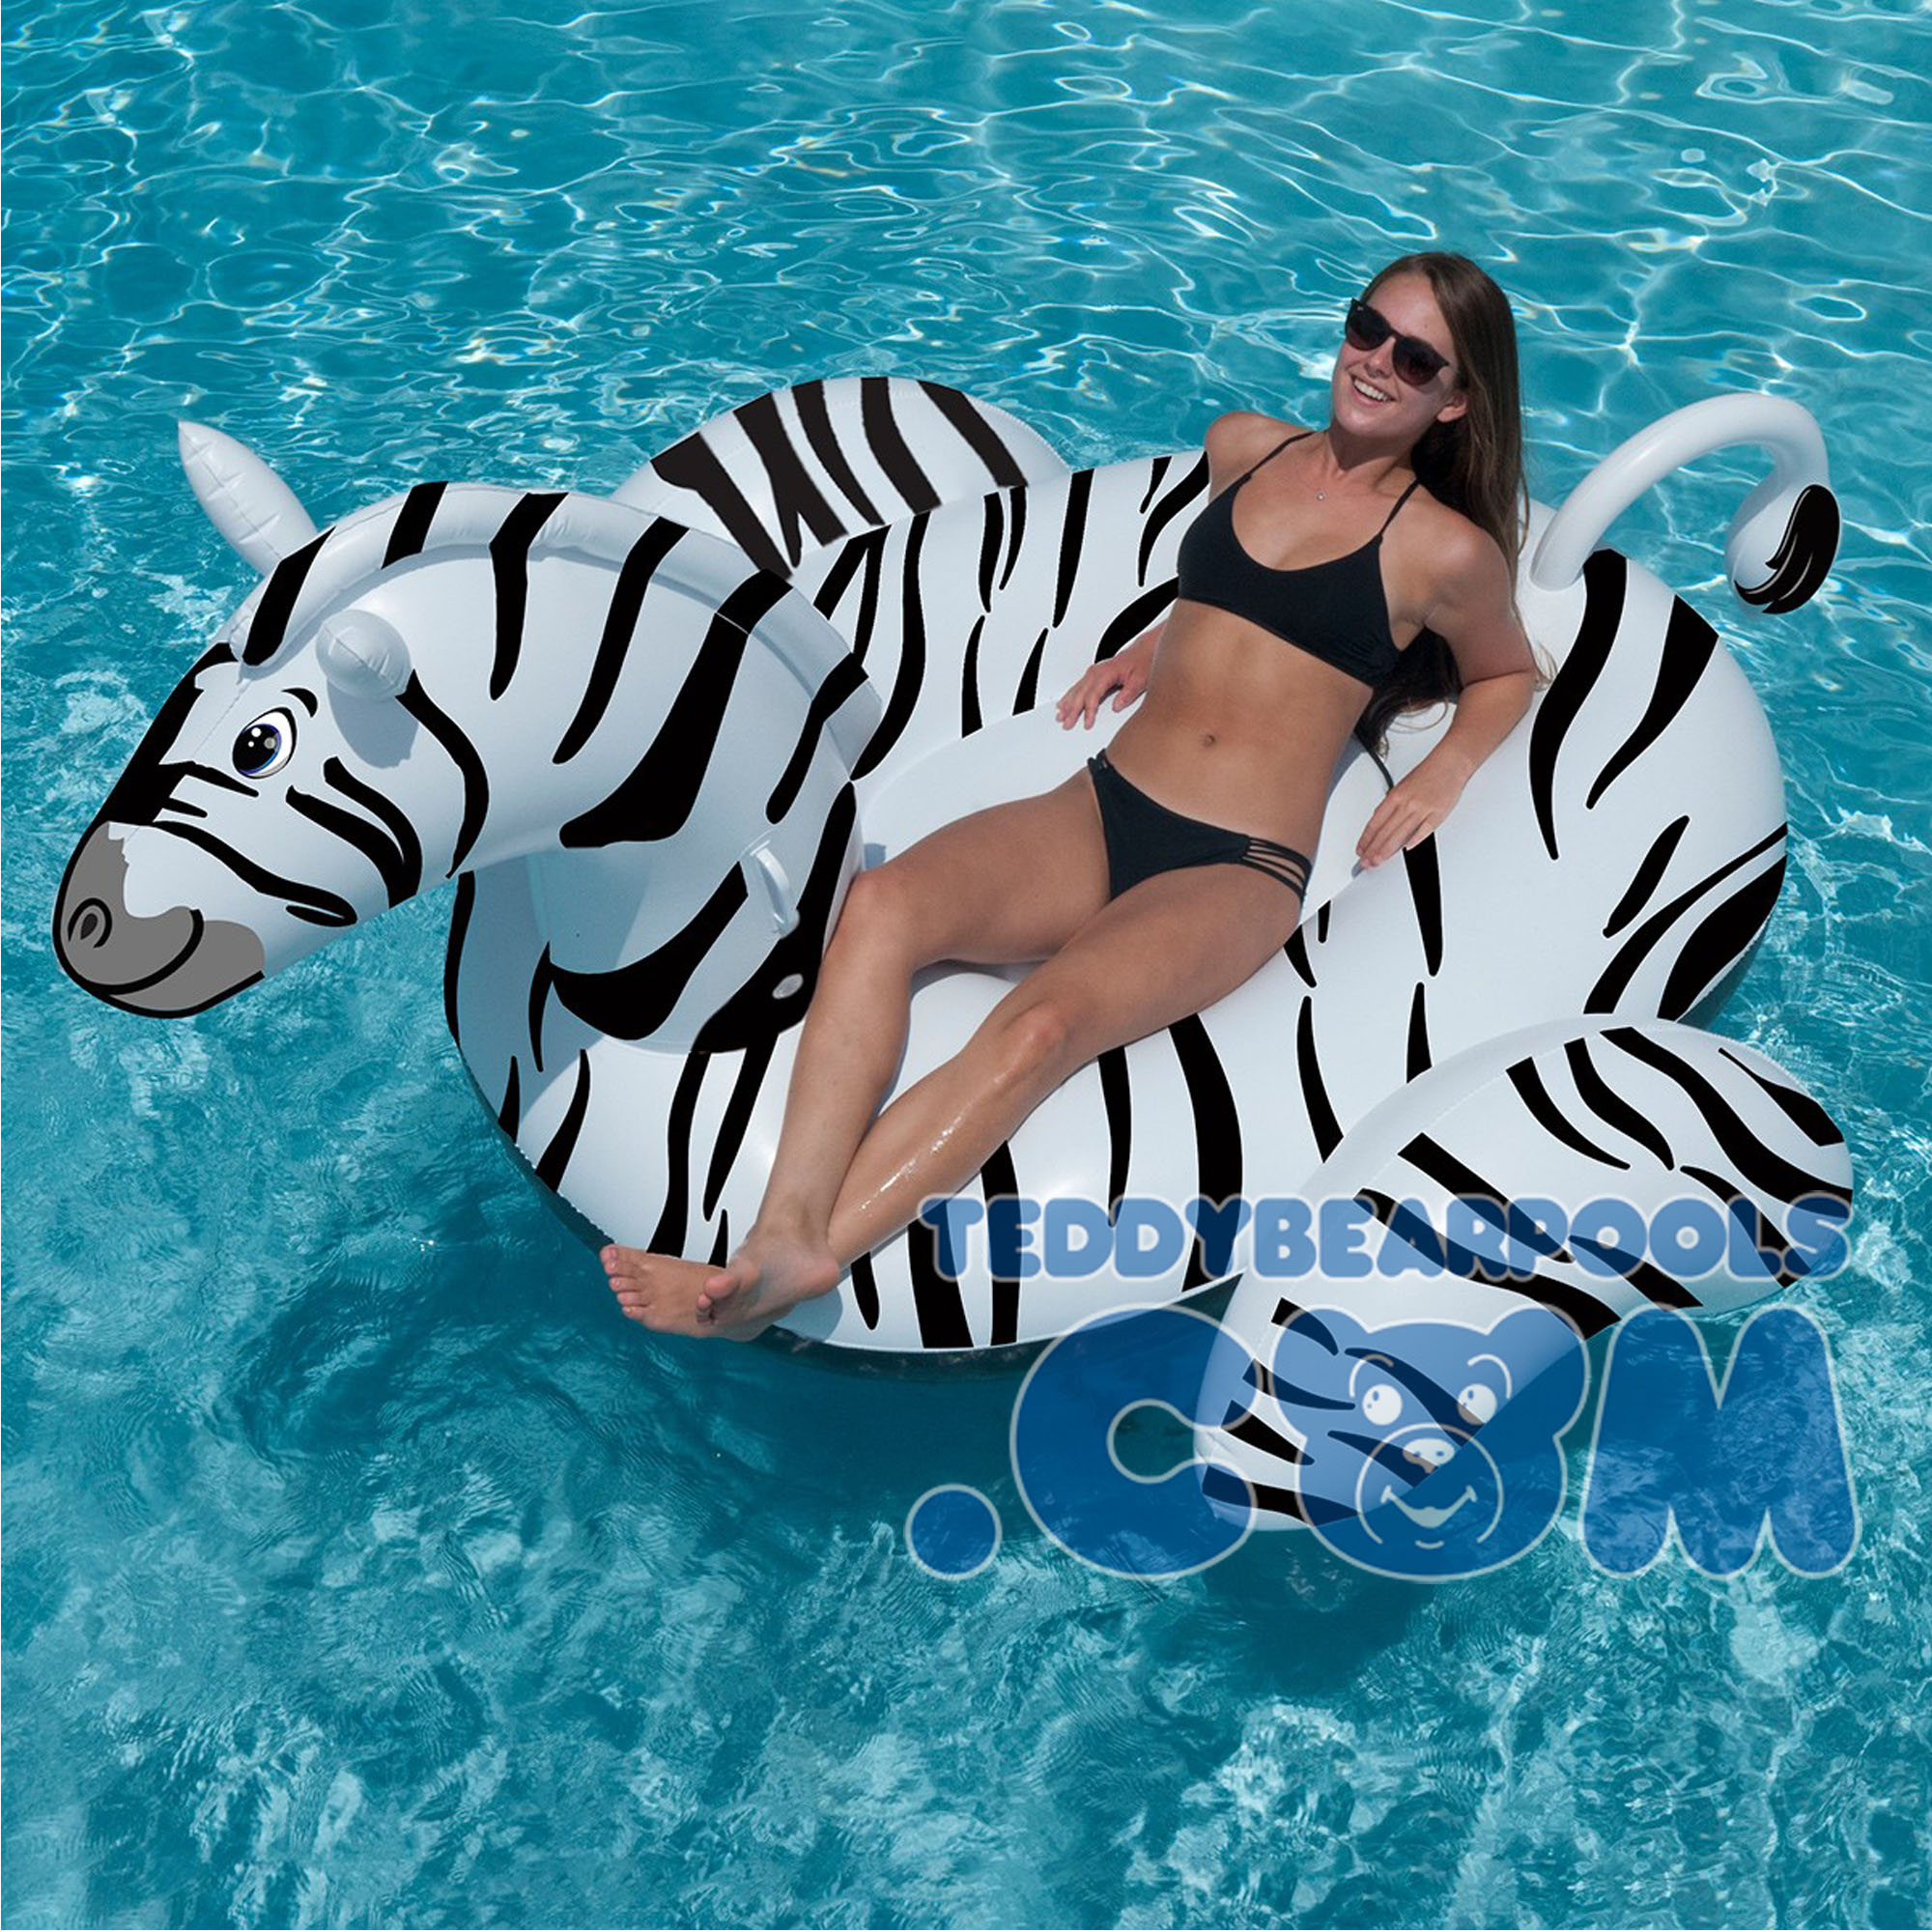 Giant zebra ride on 108 by swimline teddy bear pools for Huge inflatable swimming pool